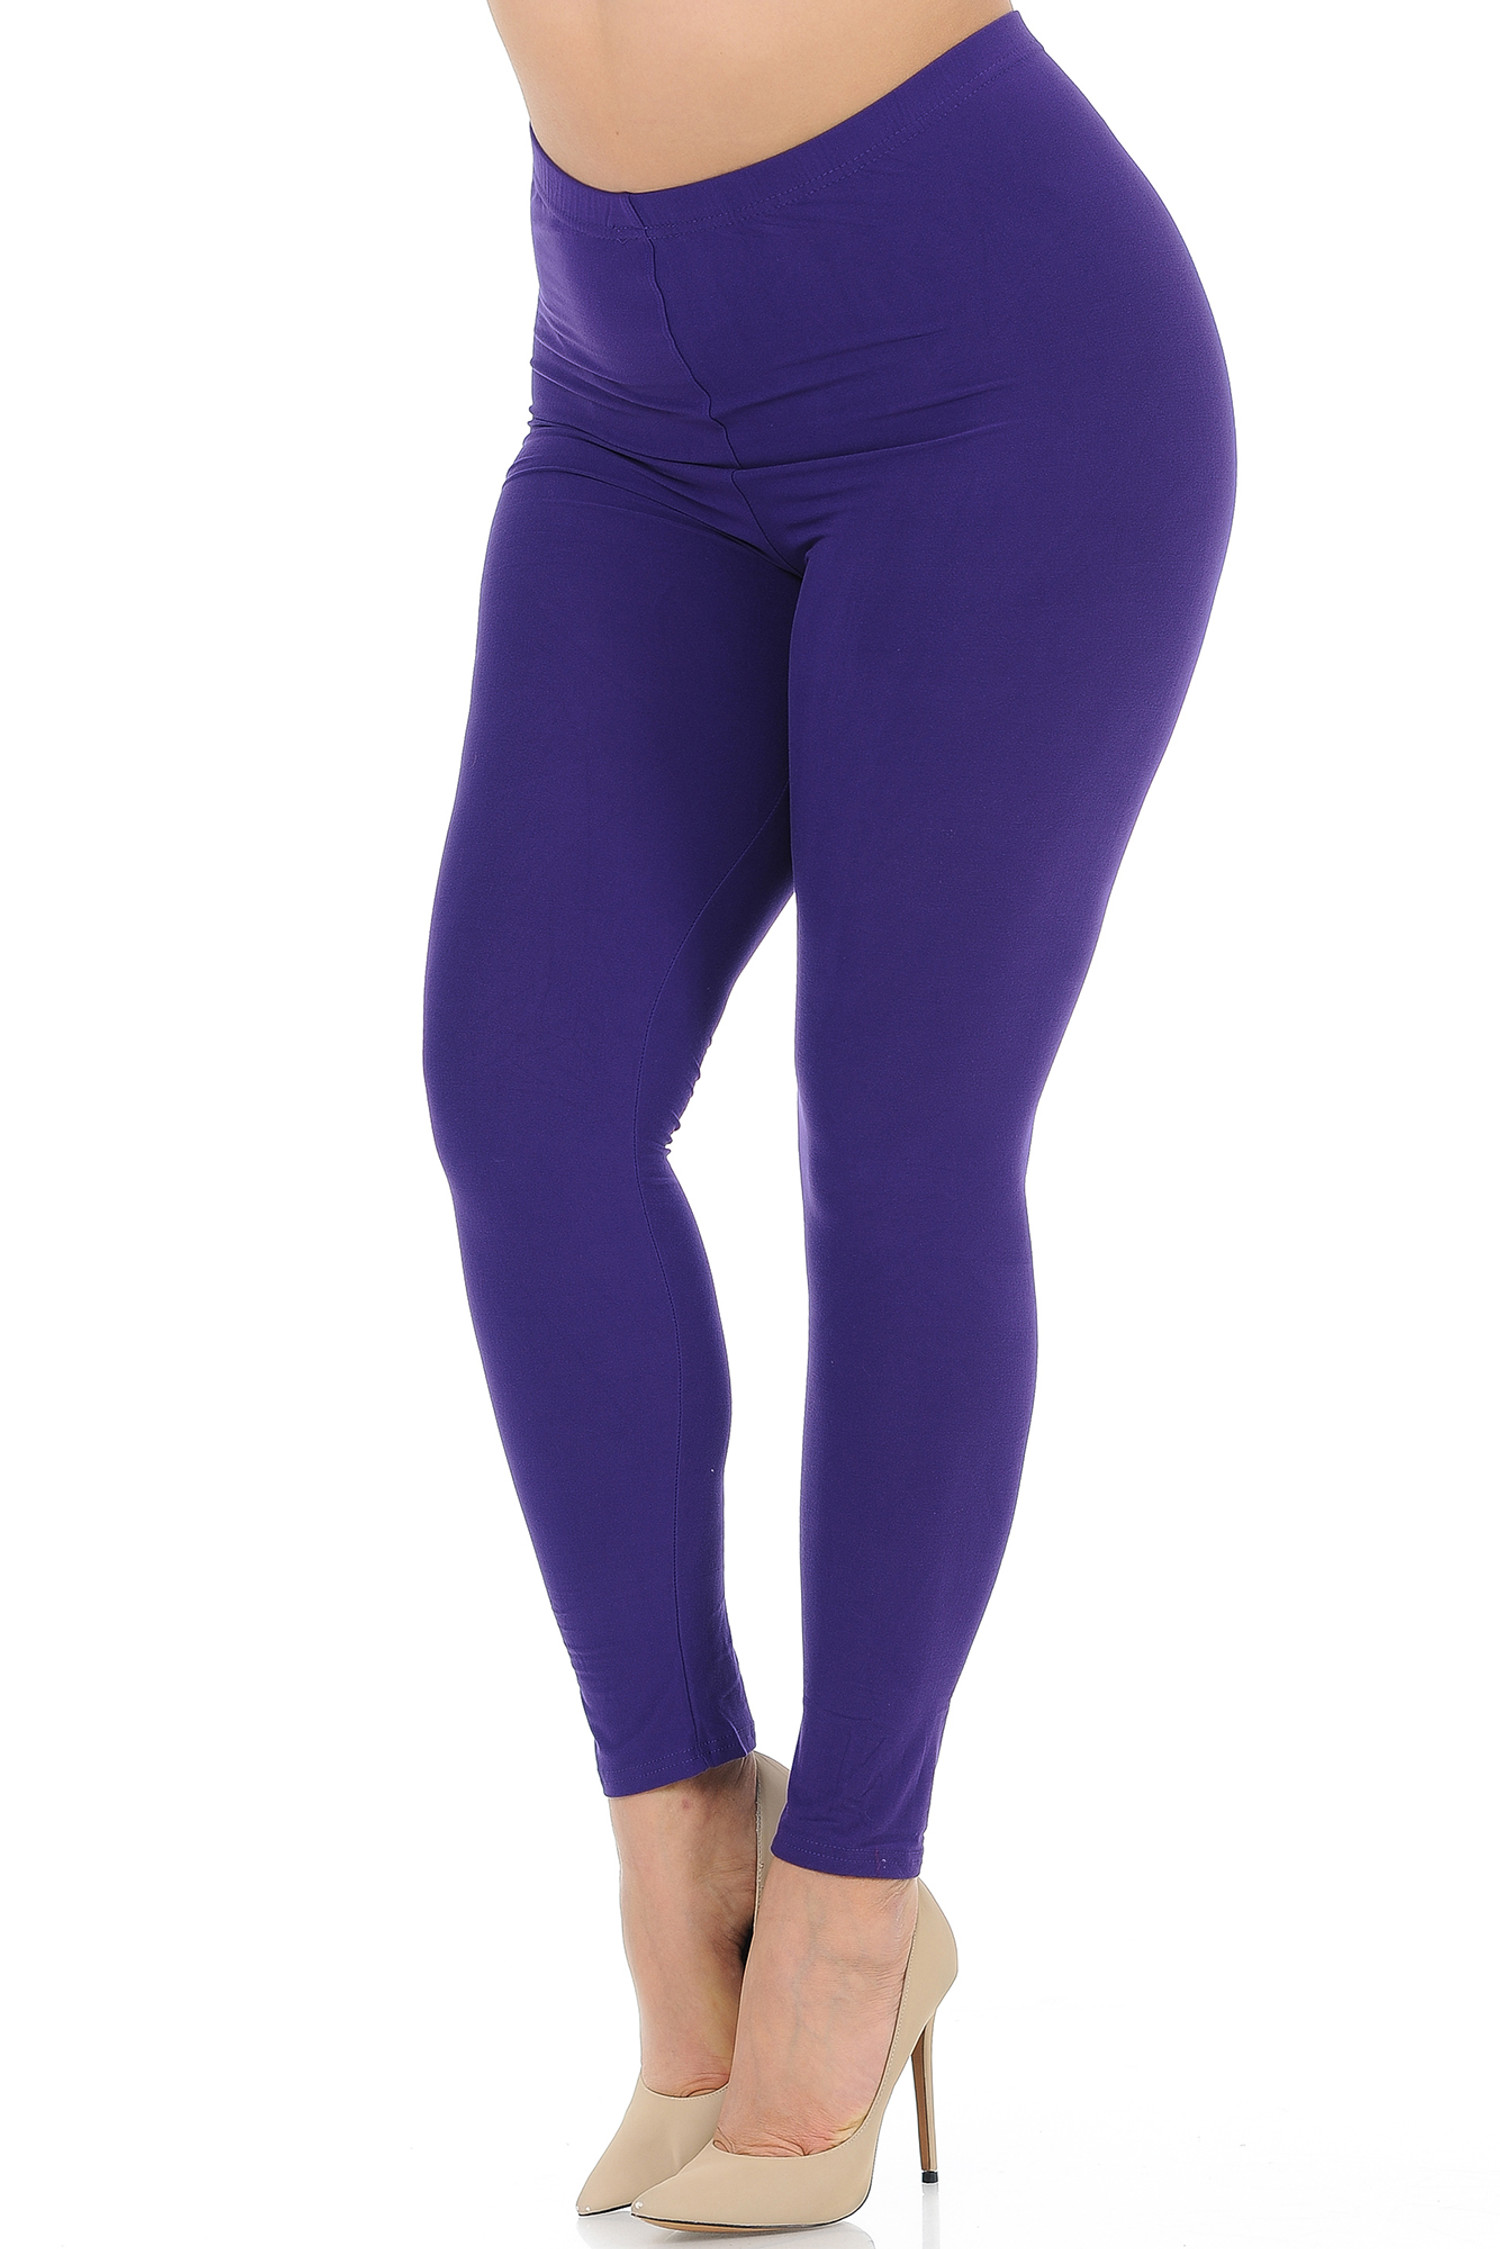 45 degree view of Purple Buttery Soft Basic Solid Extra Plus Size Leggings - 3X-5X - New Mix